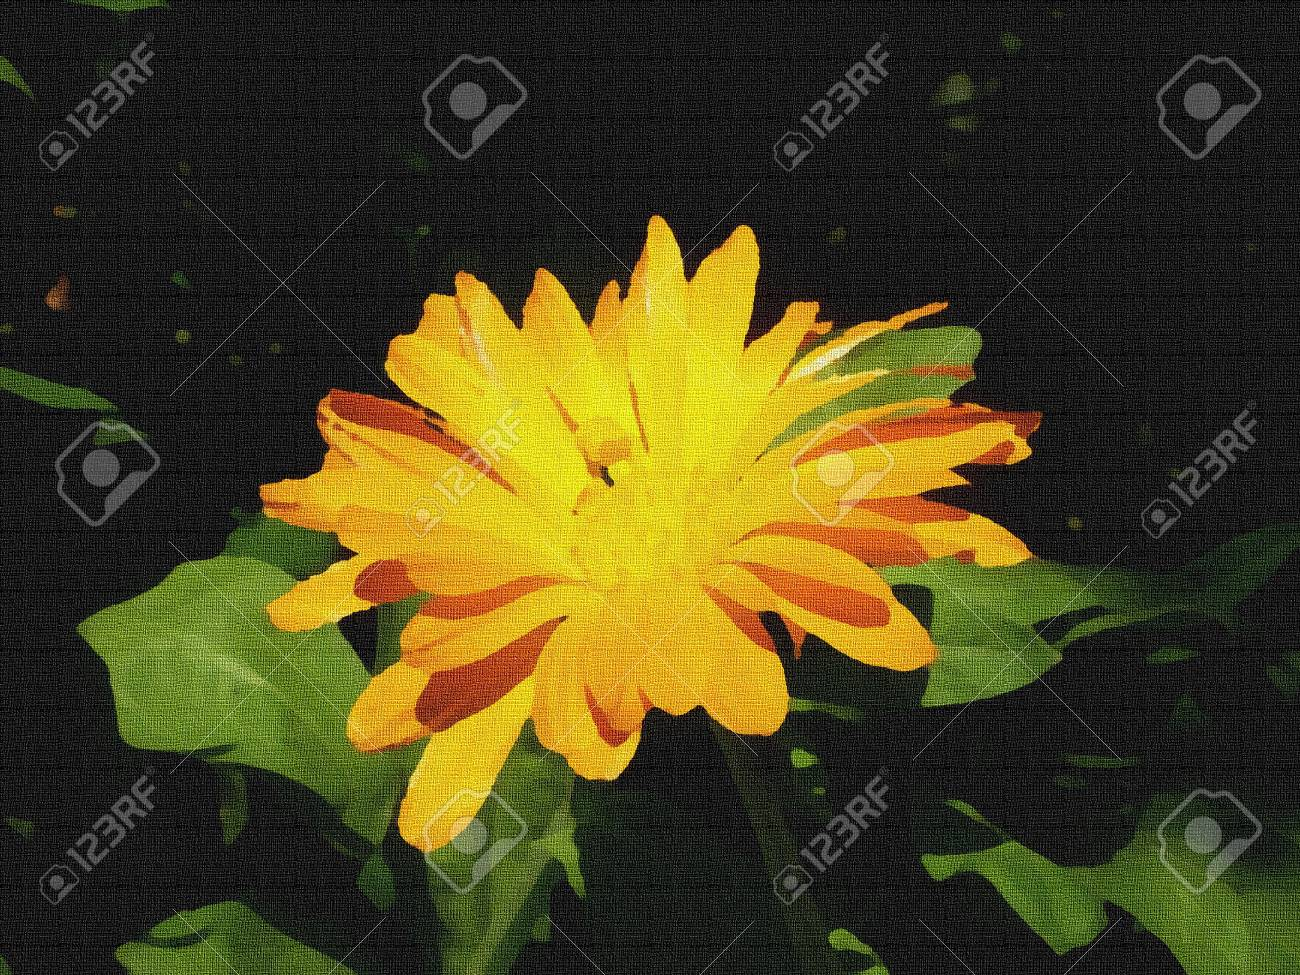 Illustration Of Calendula Flower With Orange Center And Petals